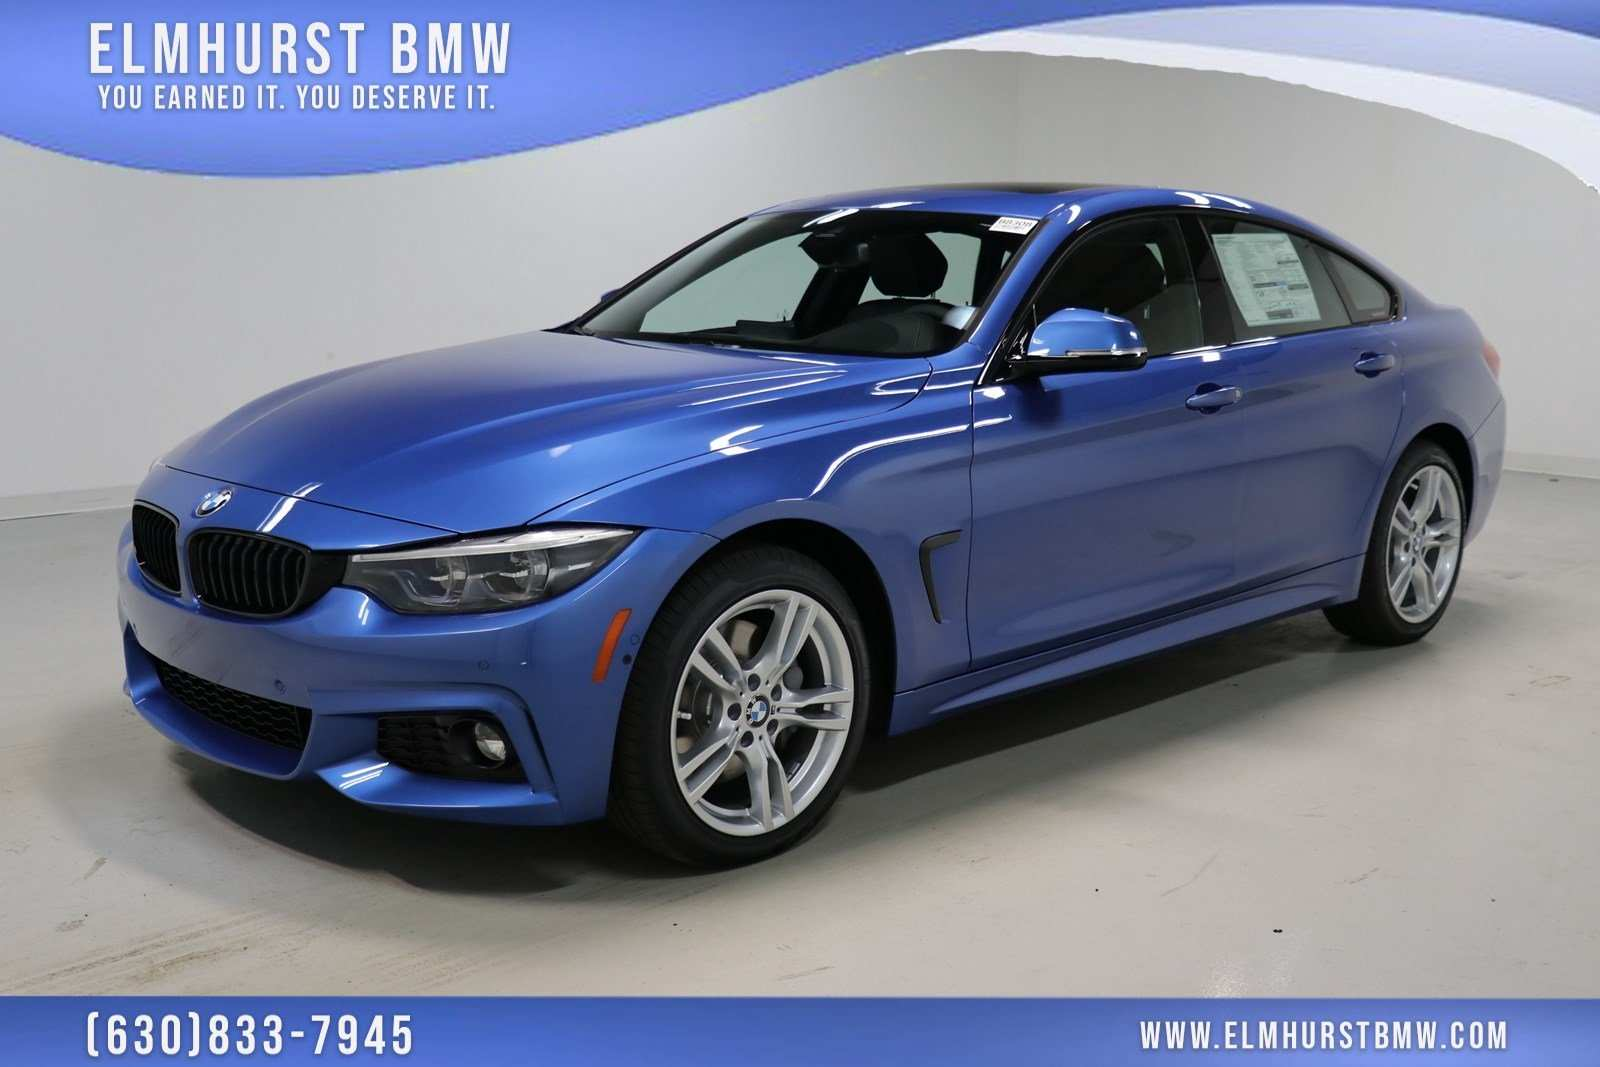 60 All New 2019 Bmw 440I Xdrive Gran Coupe First Drive for 2019 Bmw 440I Xdrive Gran Coupe